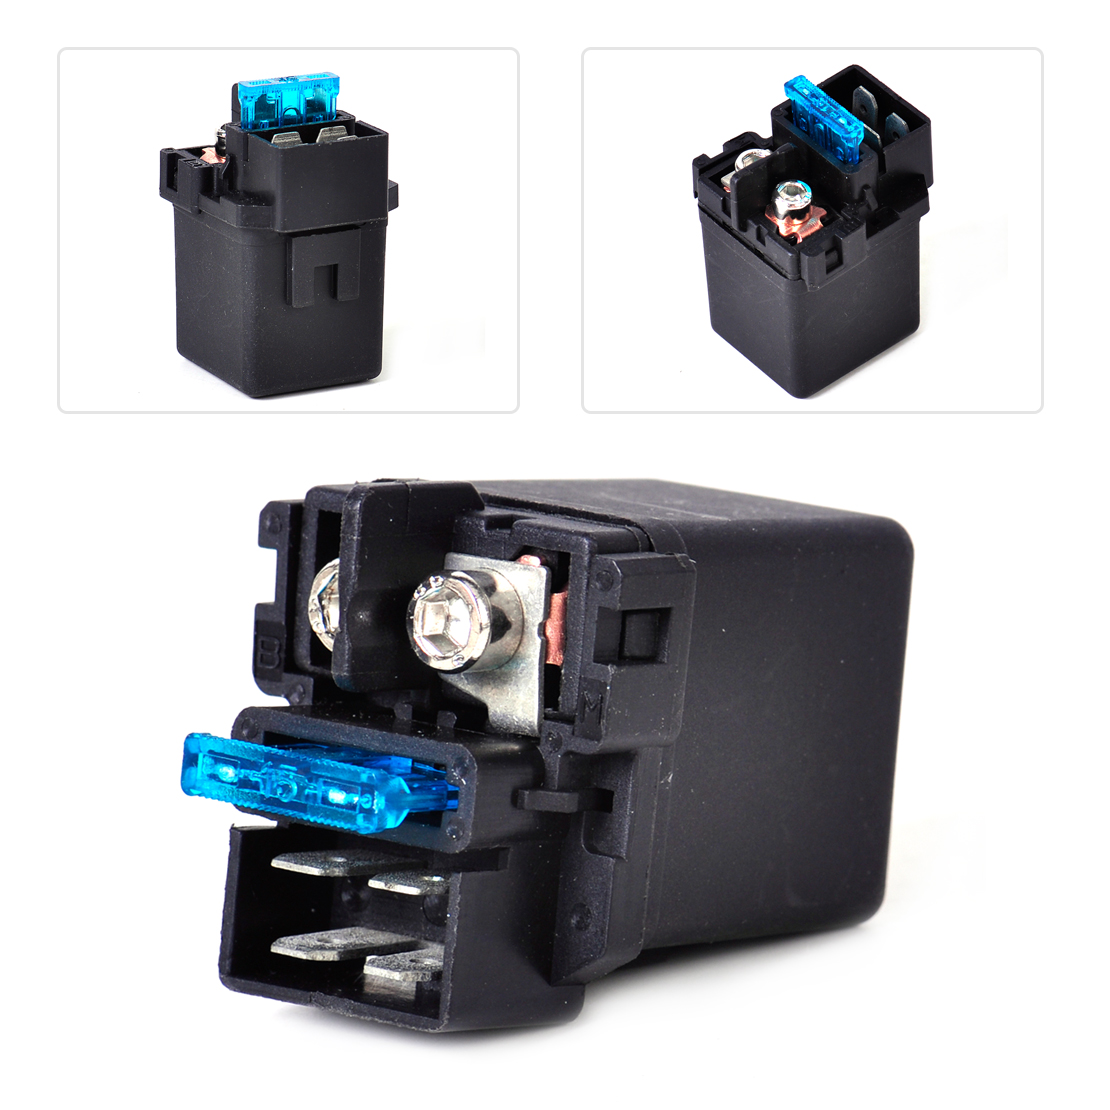 Motorcycle Starter Relay Solenoid fit for Kawasaki ZX1400 Ninja ZX-14 ZX1000 Ninja ZX-10R ZX636 Ninja ZX-6R 600 ZZR600 VN2000